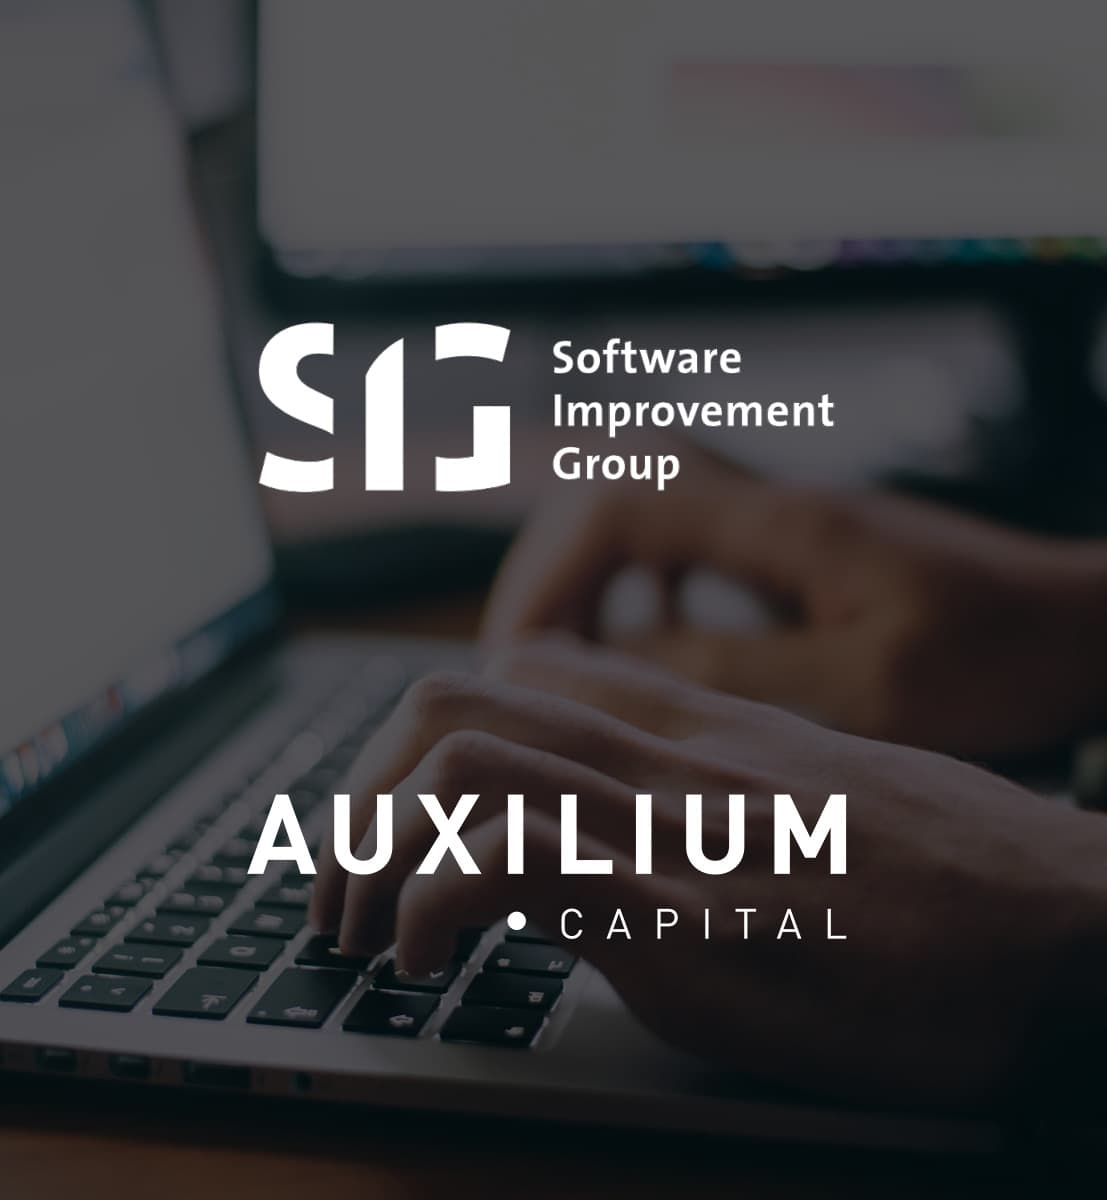 DEX international M&A advised Software Improvement Group on the sale to Auxilium Capital